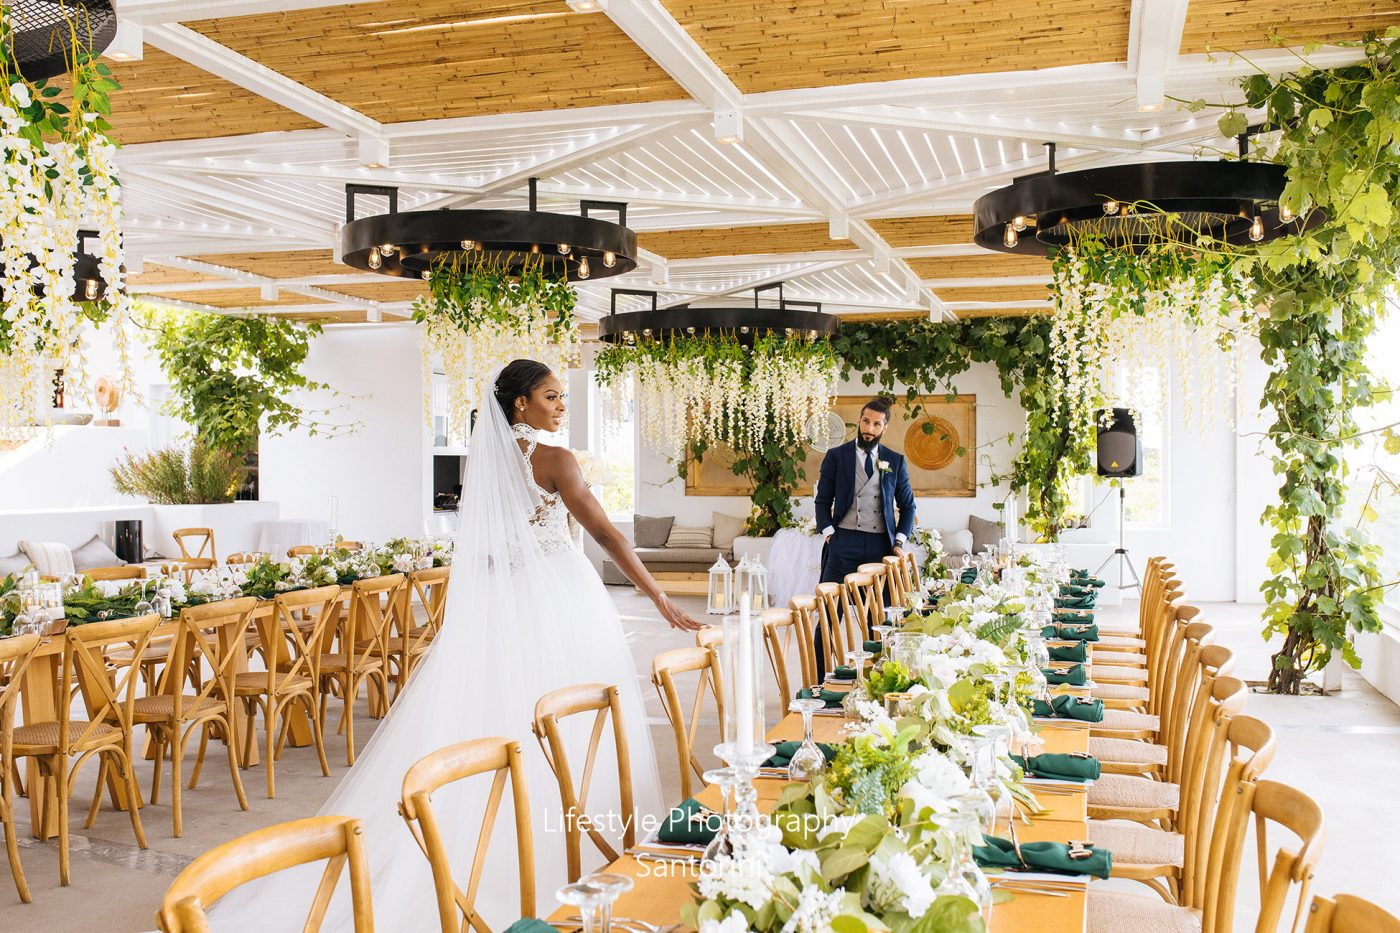 Pyrgos Restaurant Wedding Venue